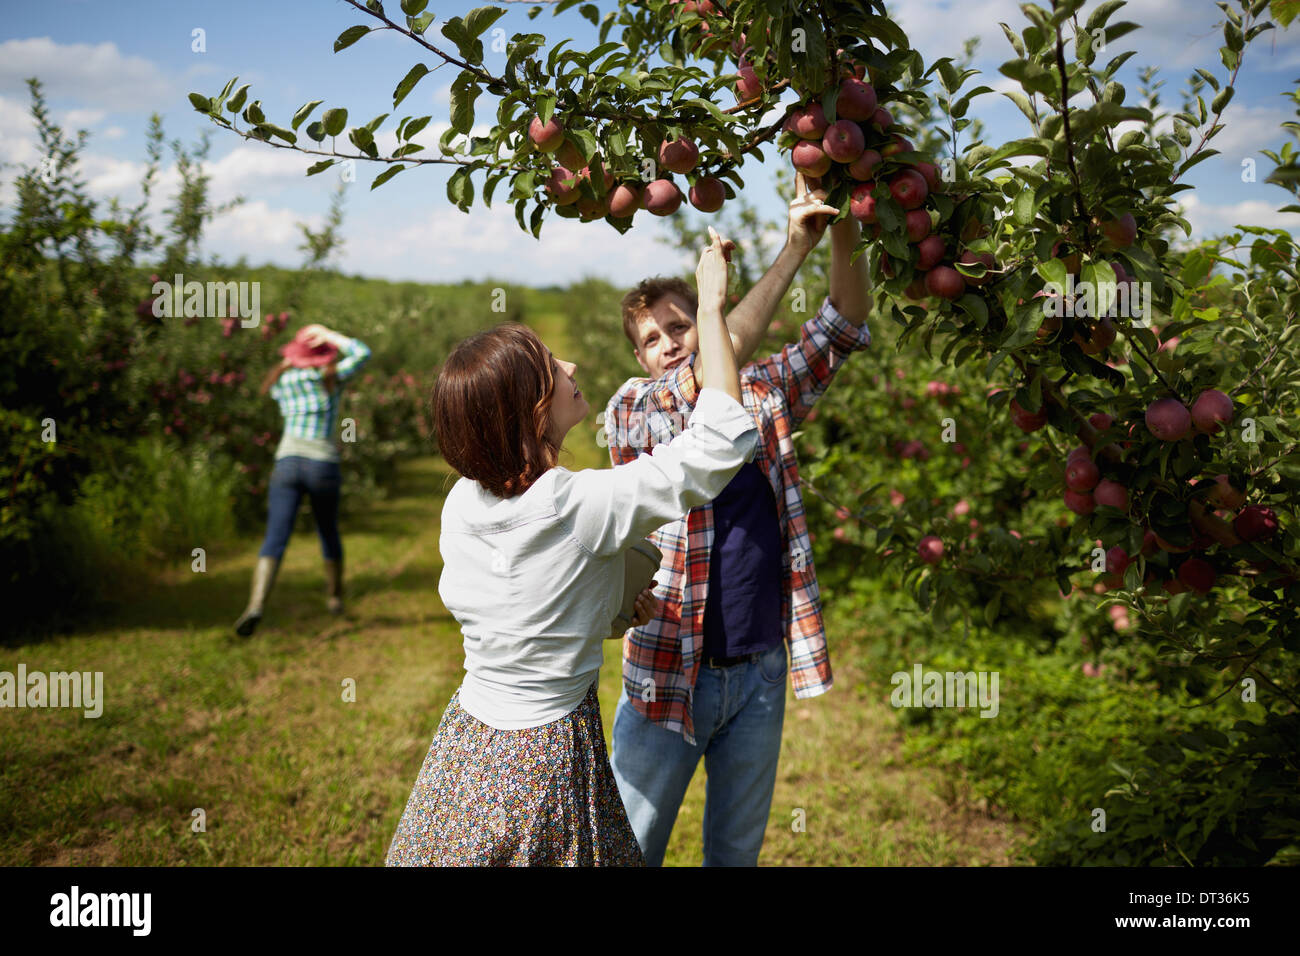 Rows of fruit trees in an organic orchard A group of people picking the ripe apples - Stock Image